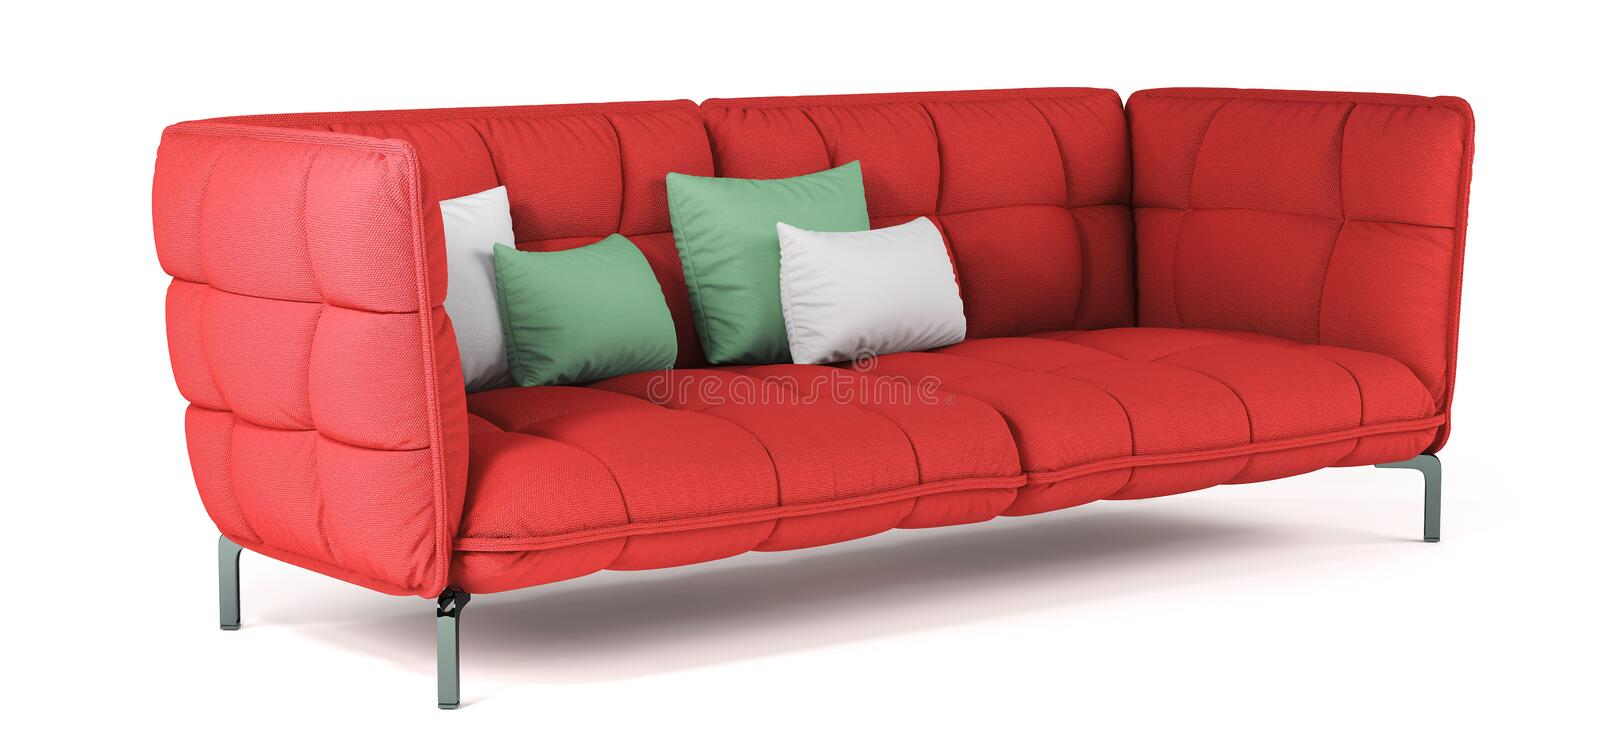 Modern red quilted fabric sofa on metal legs with pillows on isolated white background. Furniture, interior object. Bright scarlet stock photo